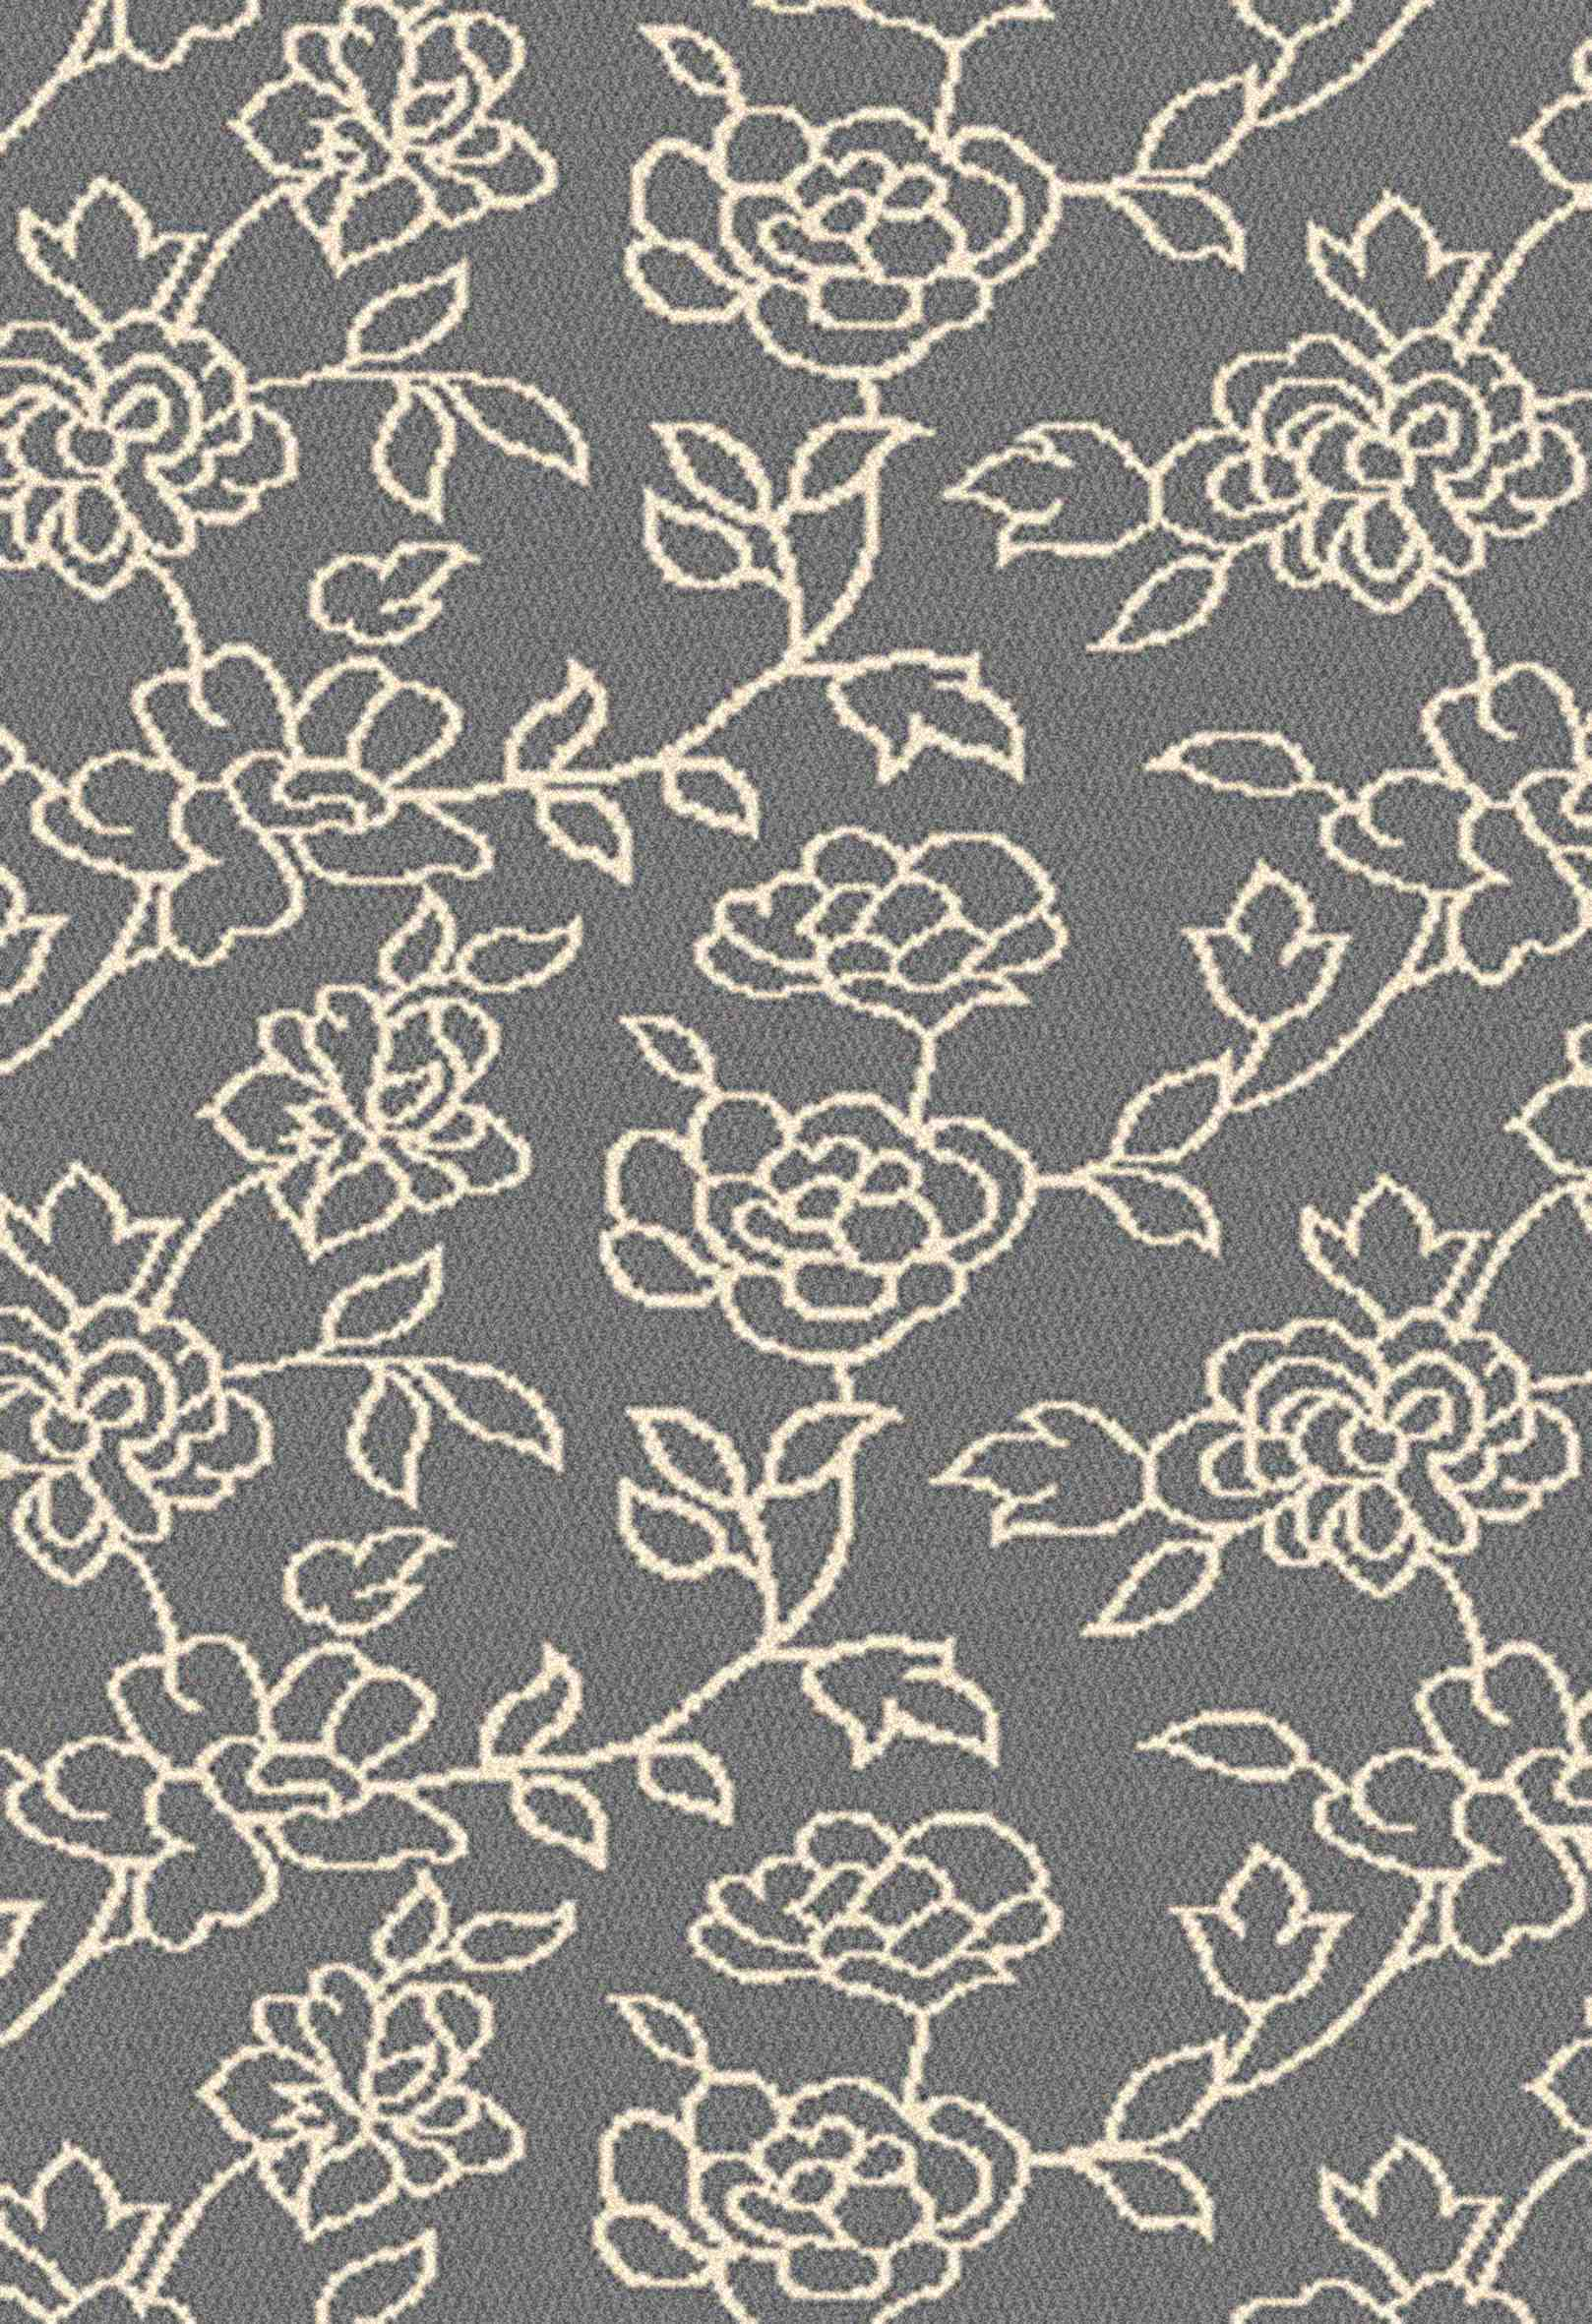 Dynamic Rugs Passion Floral Grey 6206 Area Rug